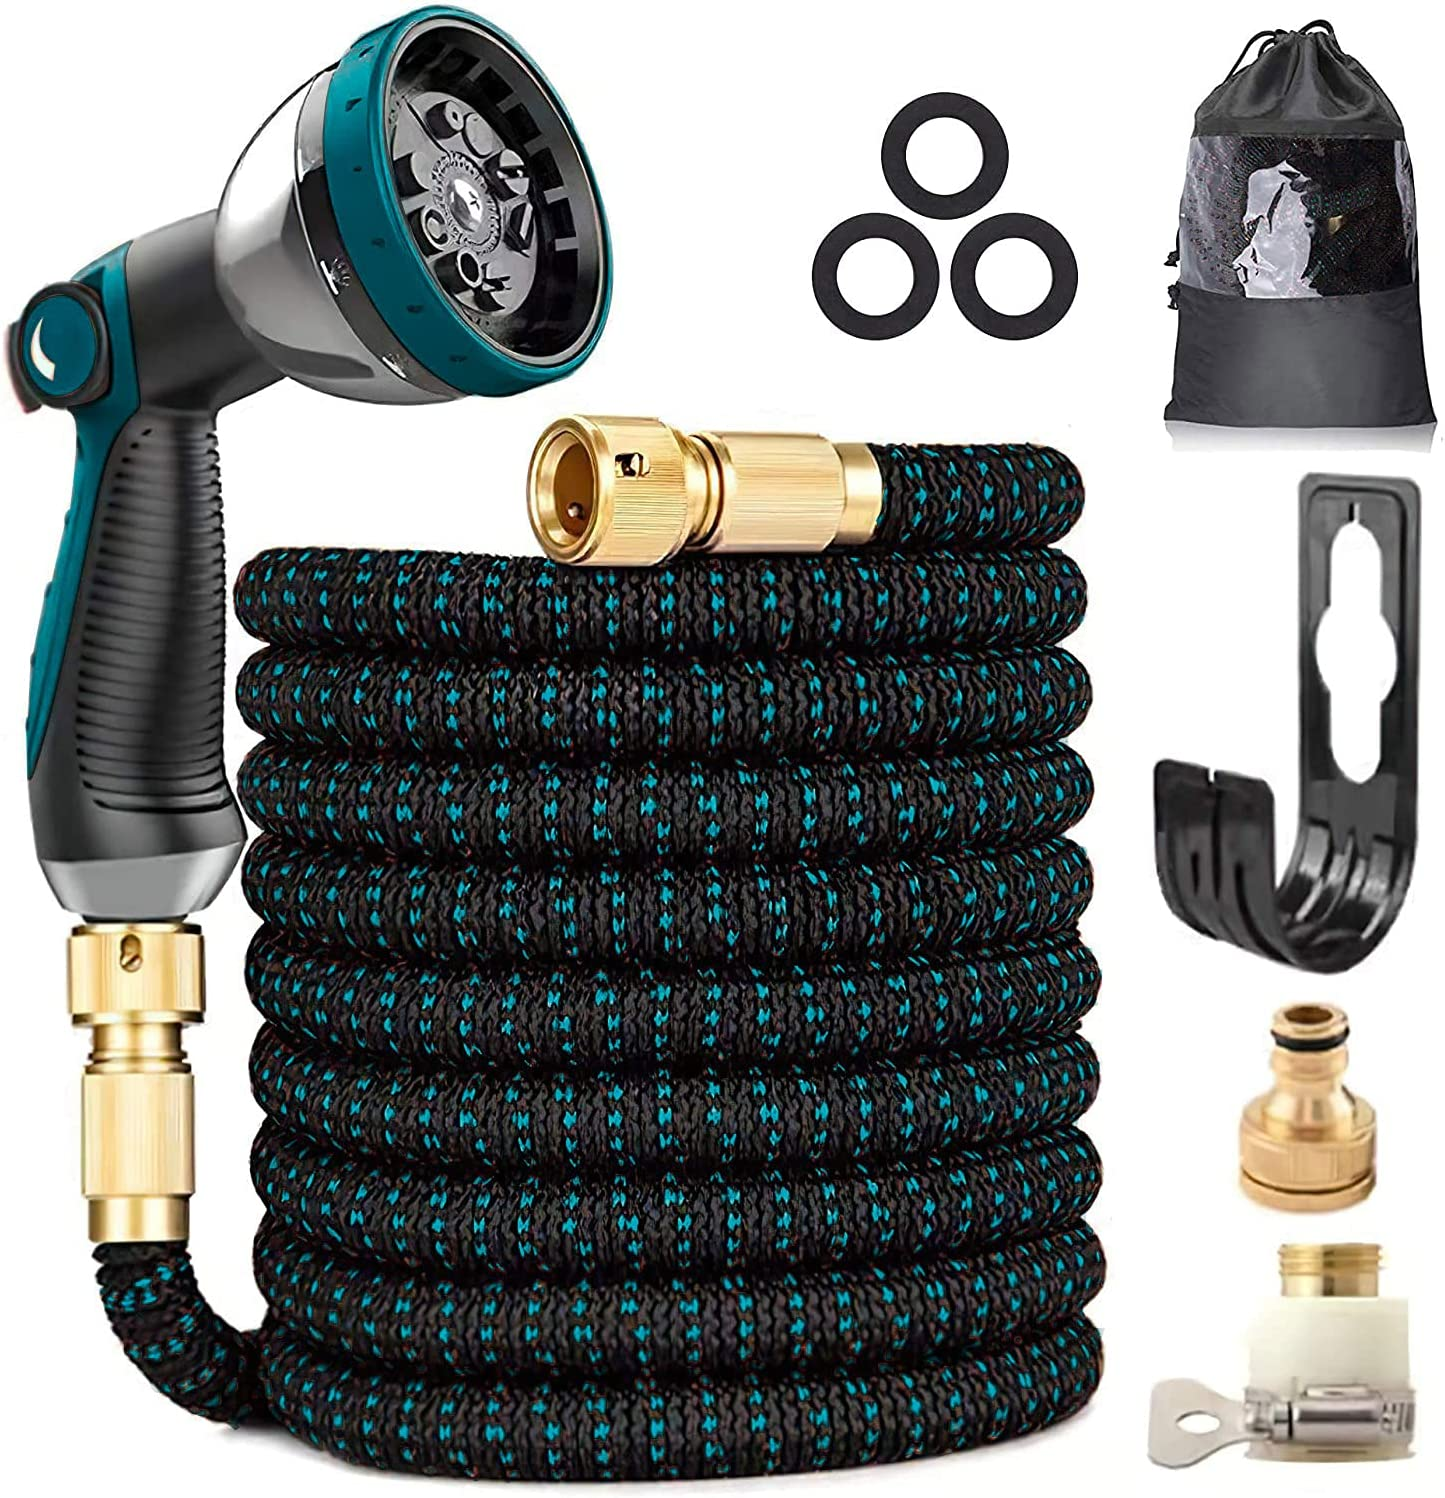 Expandable Garden Water Hose 100FT - Upgraded 3-Layer Latex Flexible Hose, 3/4